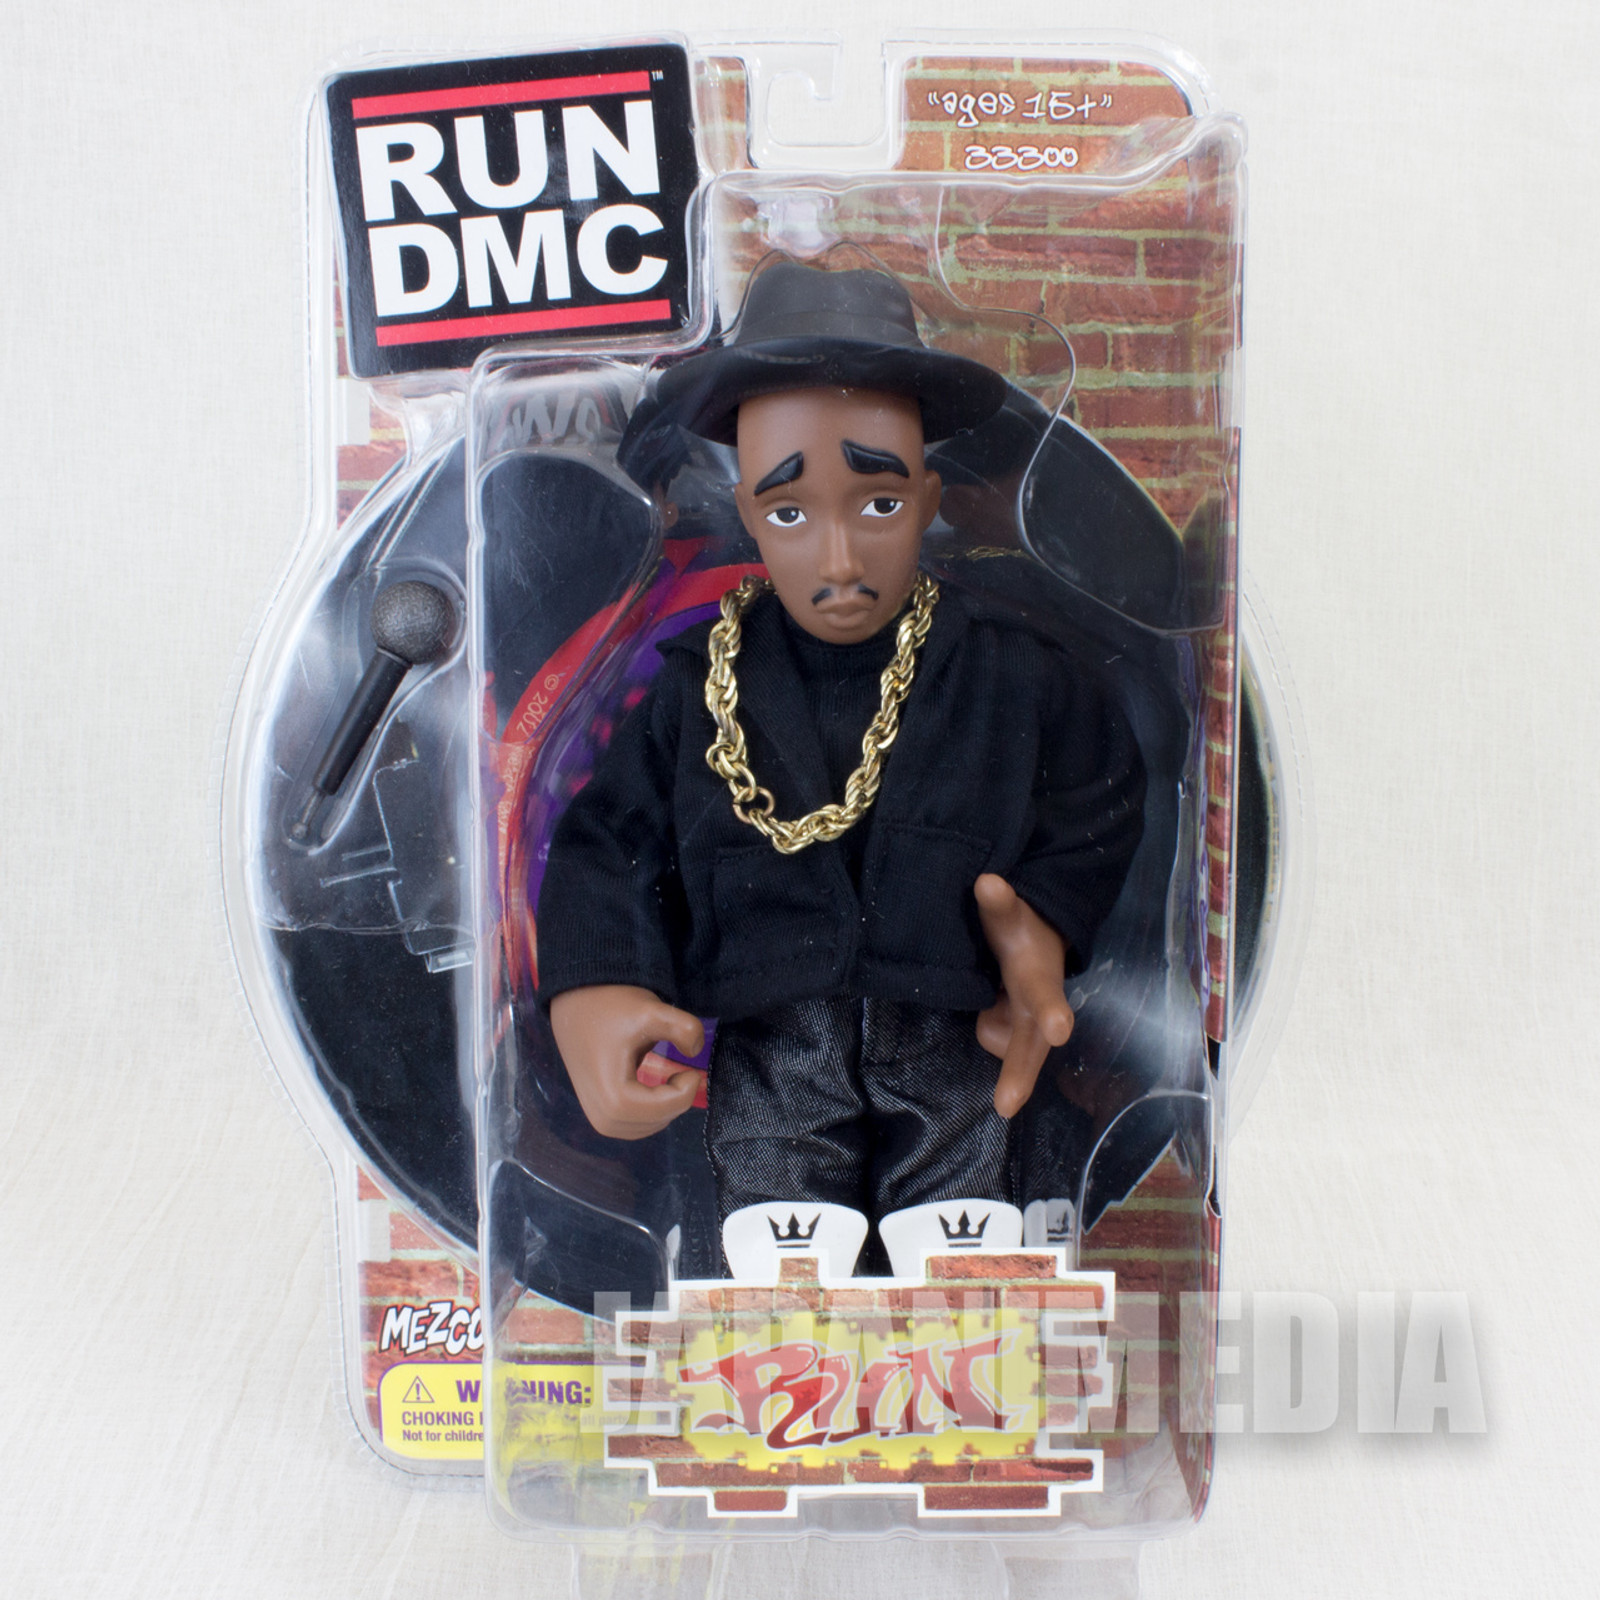 RUN DMC Run Action Figure Black Clothes Ver. Mezco Toy HIP HOP RAP